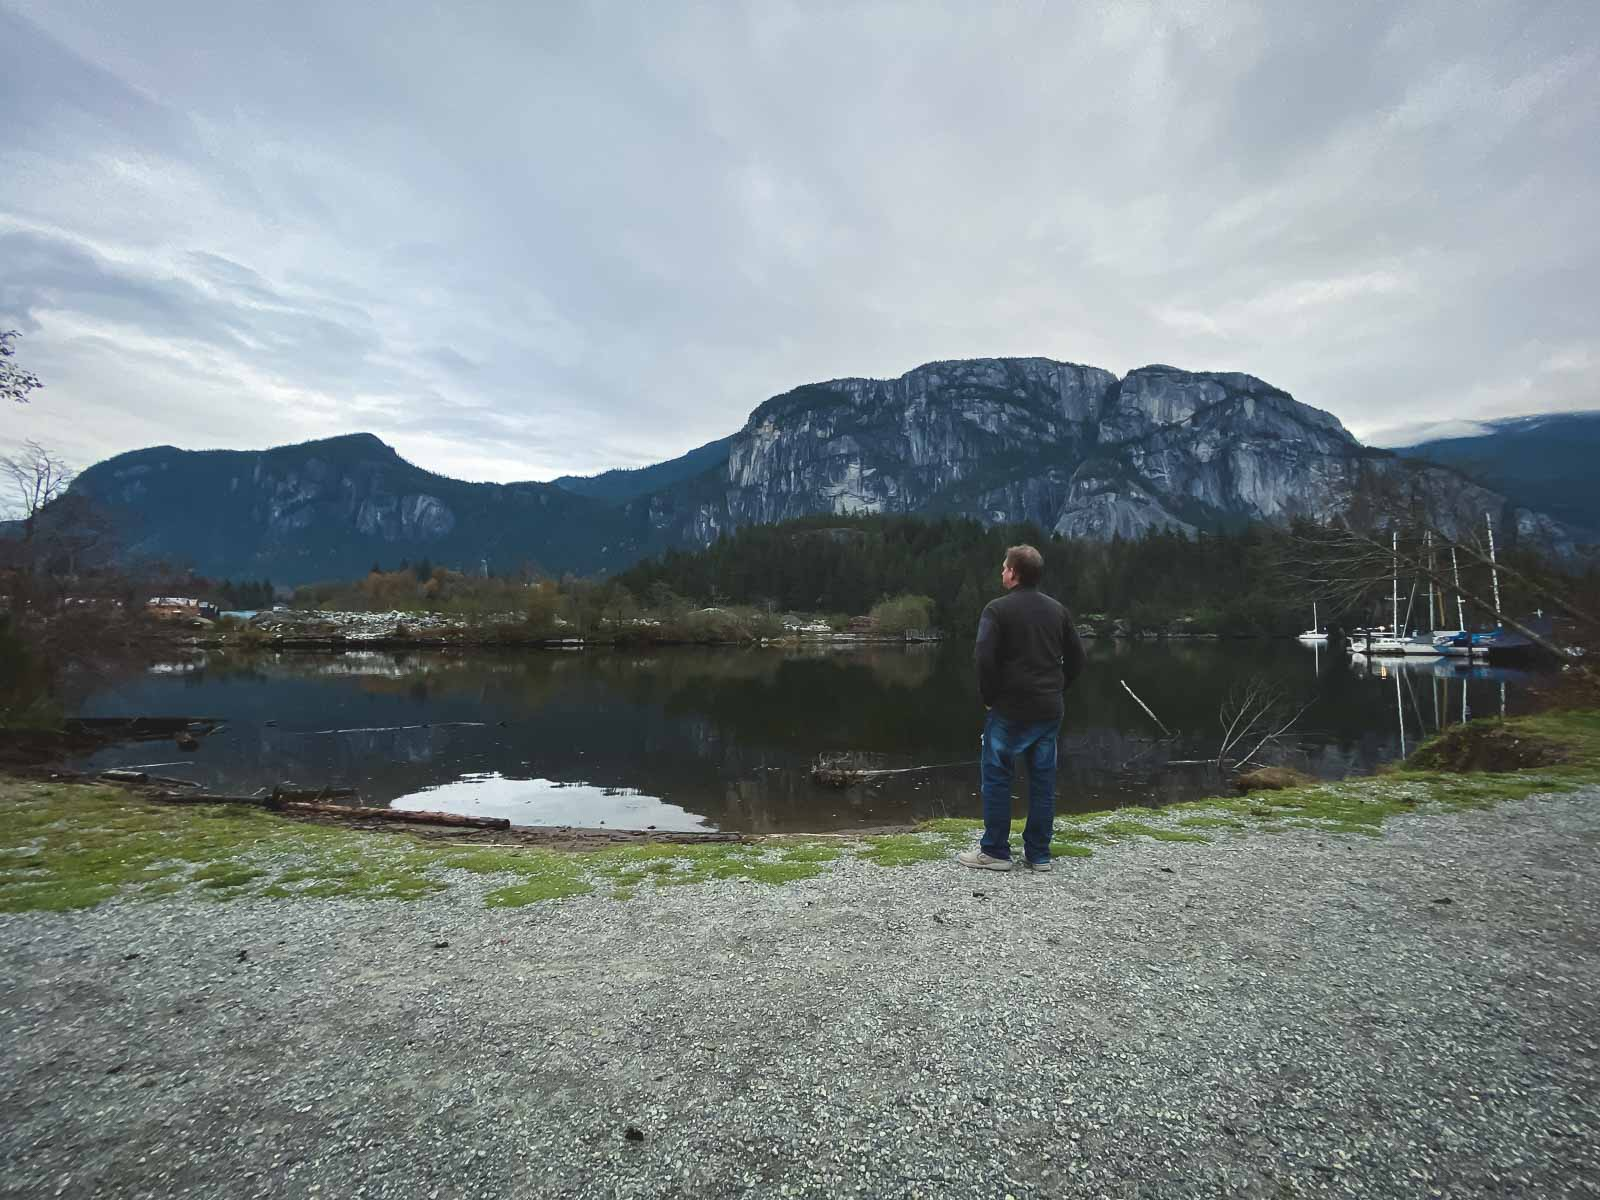 Questions about Squamish BC